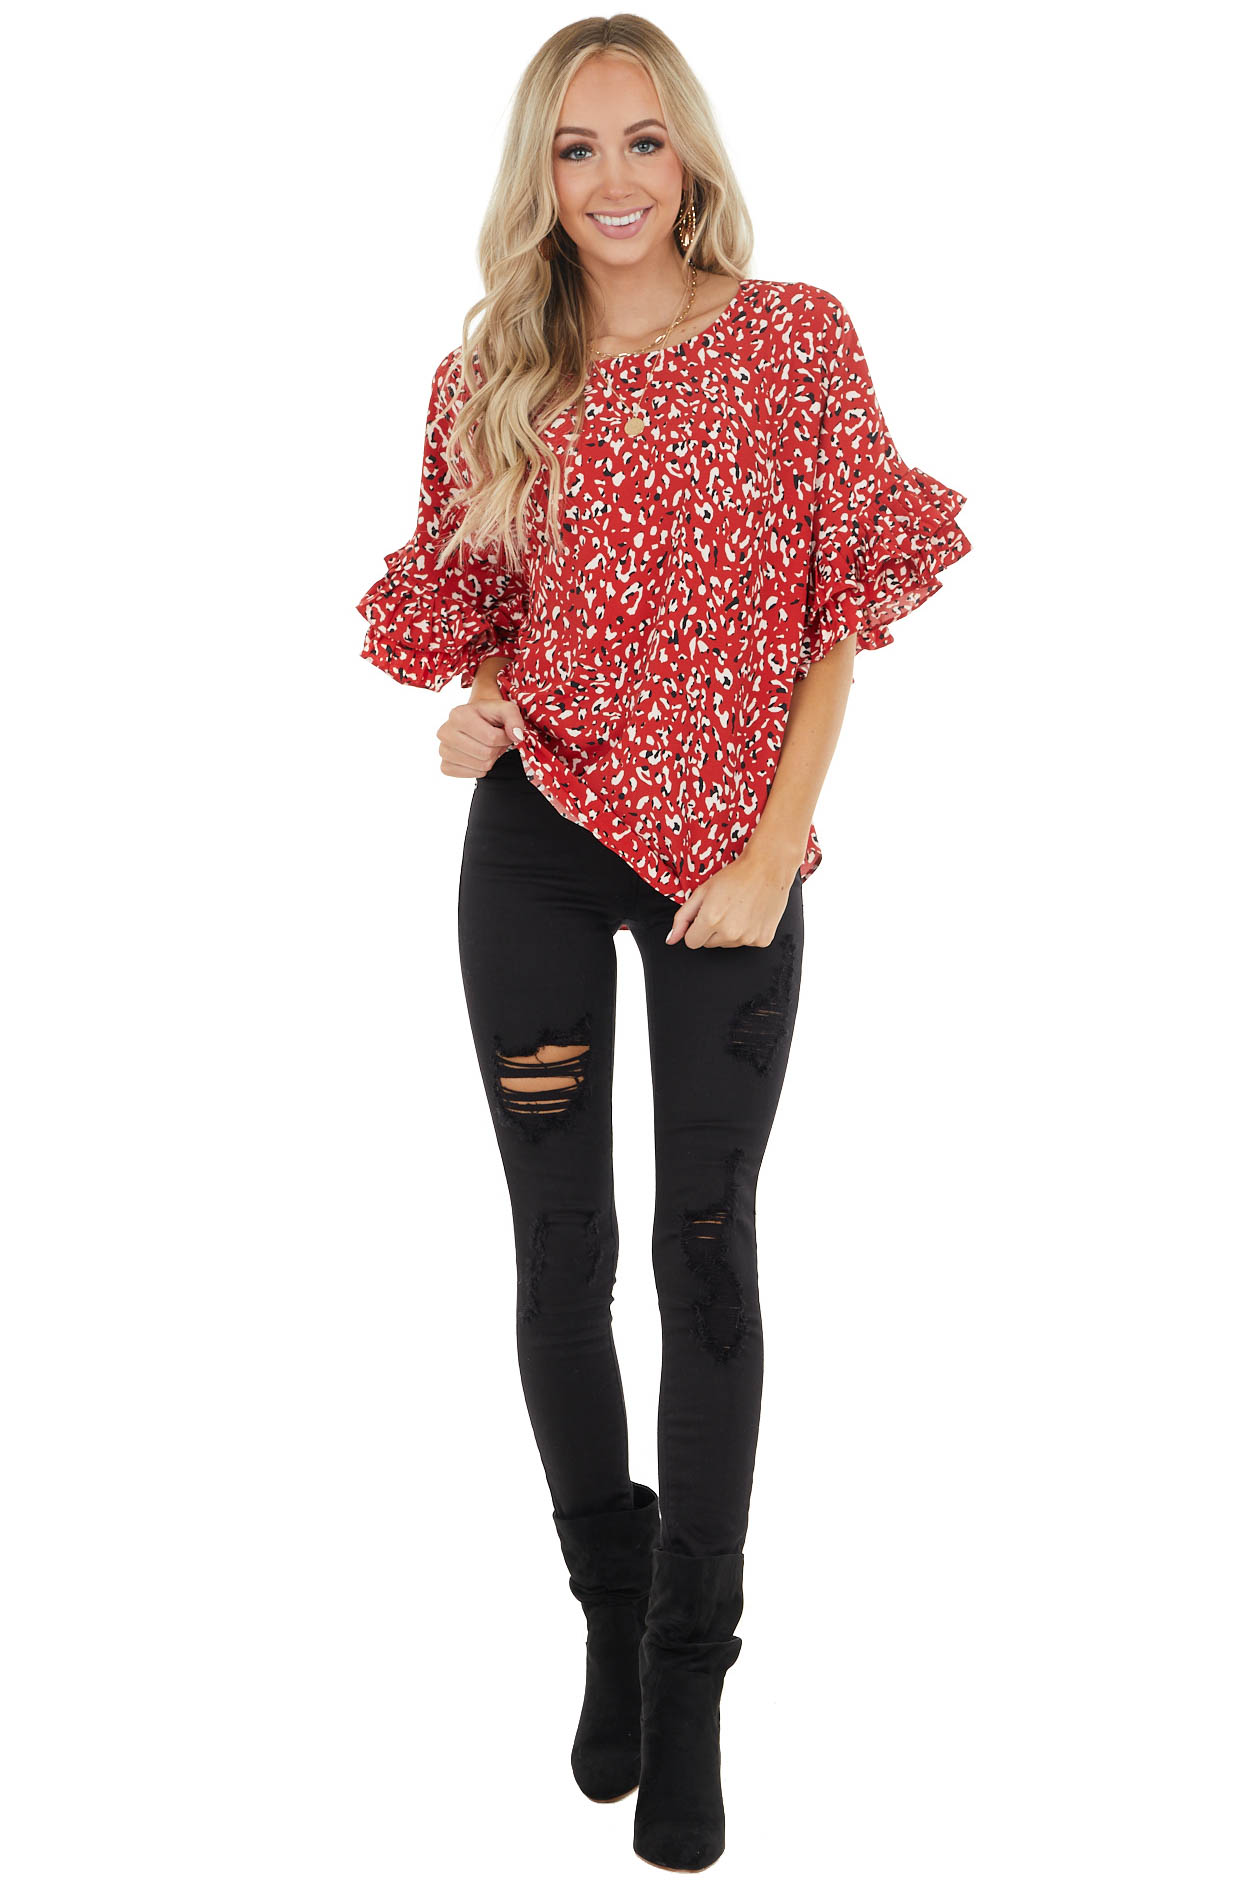 Cherry Red Leopard Print Blouse with 3/4 Ruffle Sleeves